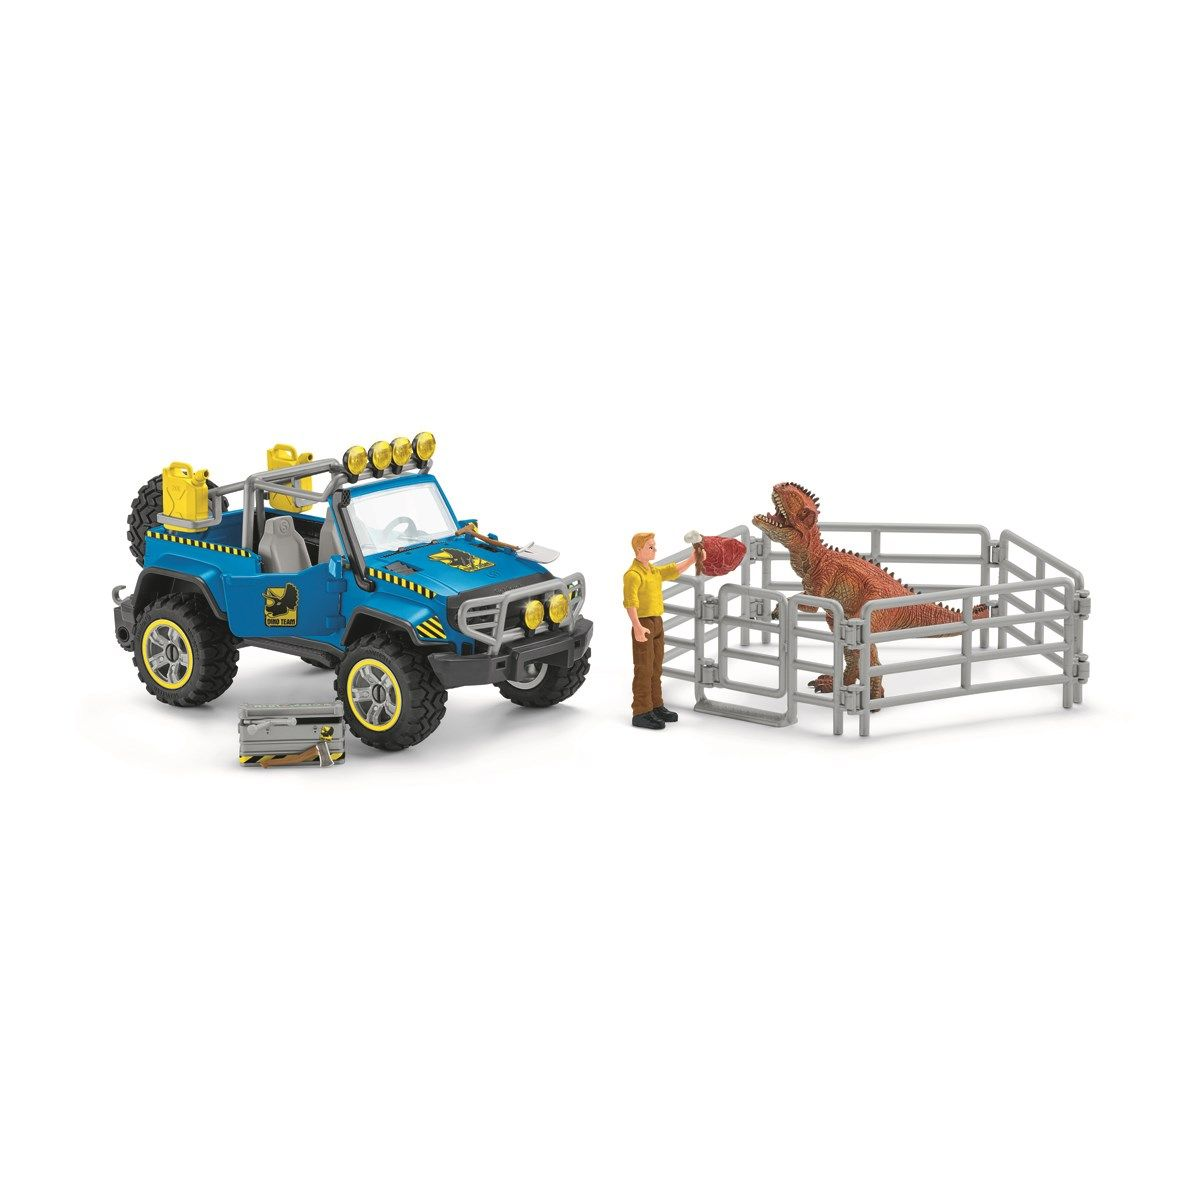 Schleich - Off-road vehicle with dino outpost (41464)